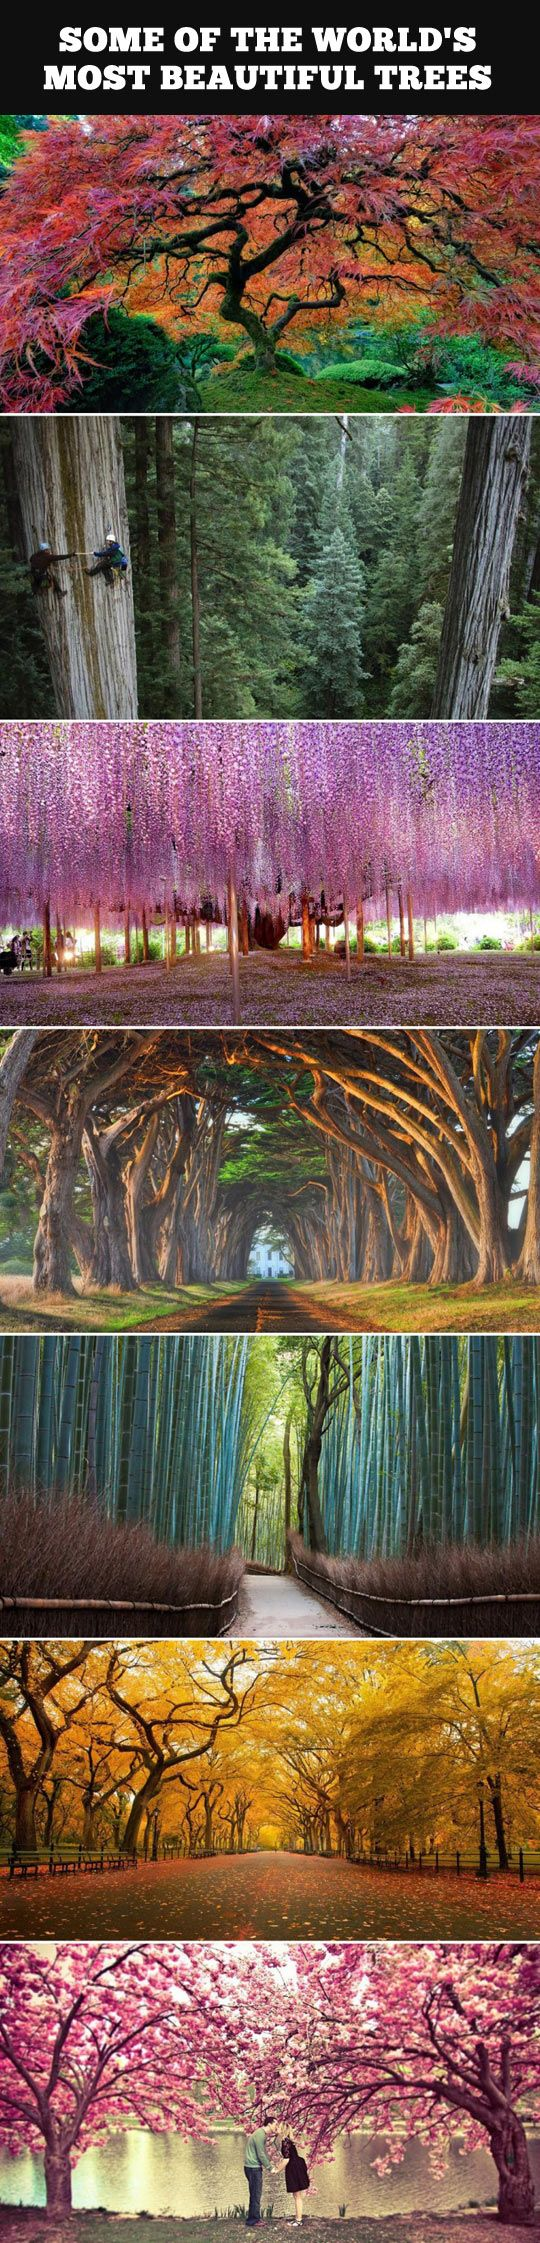 World's most beautiful trees…